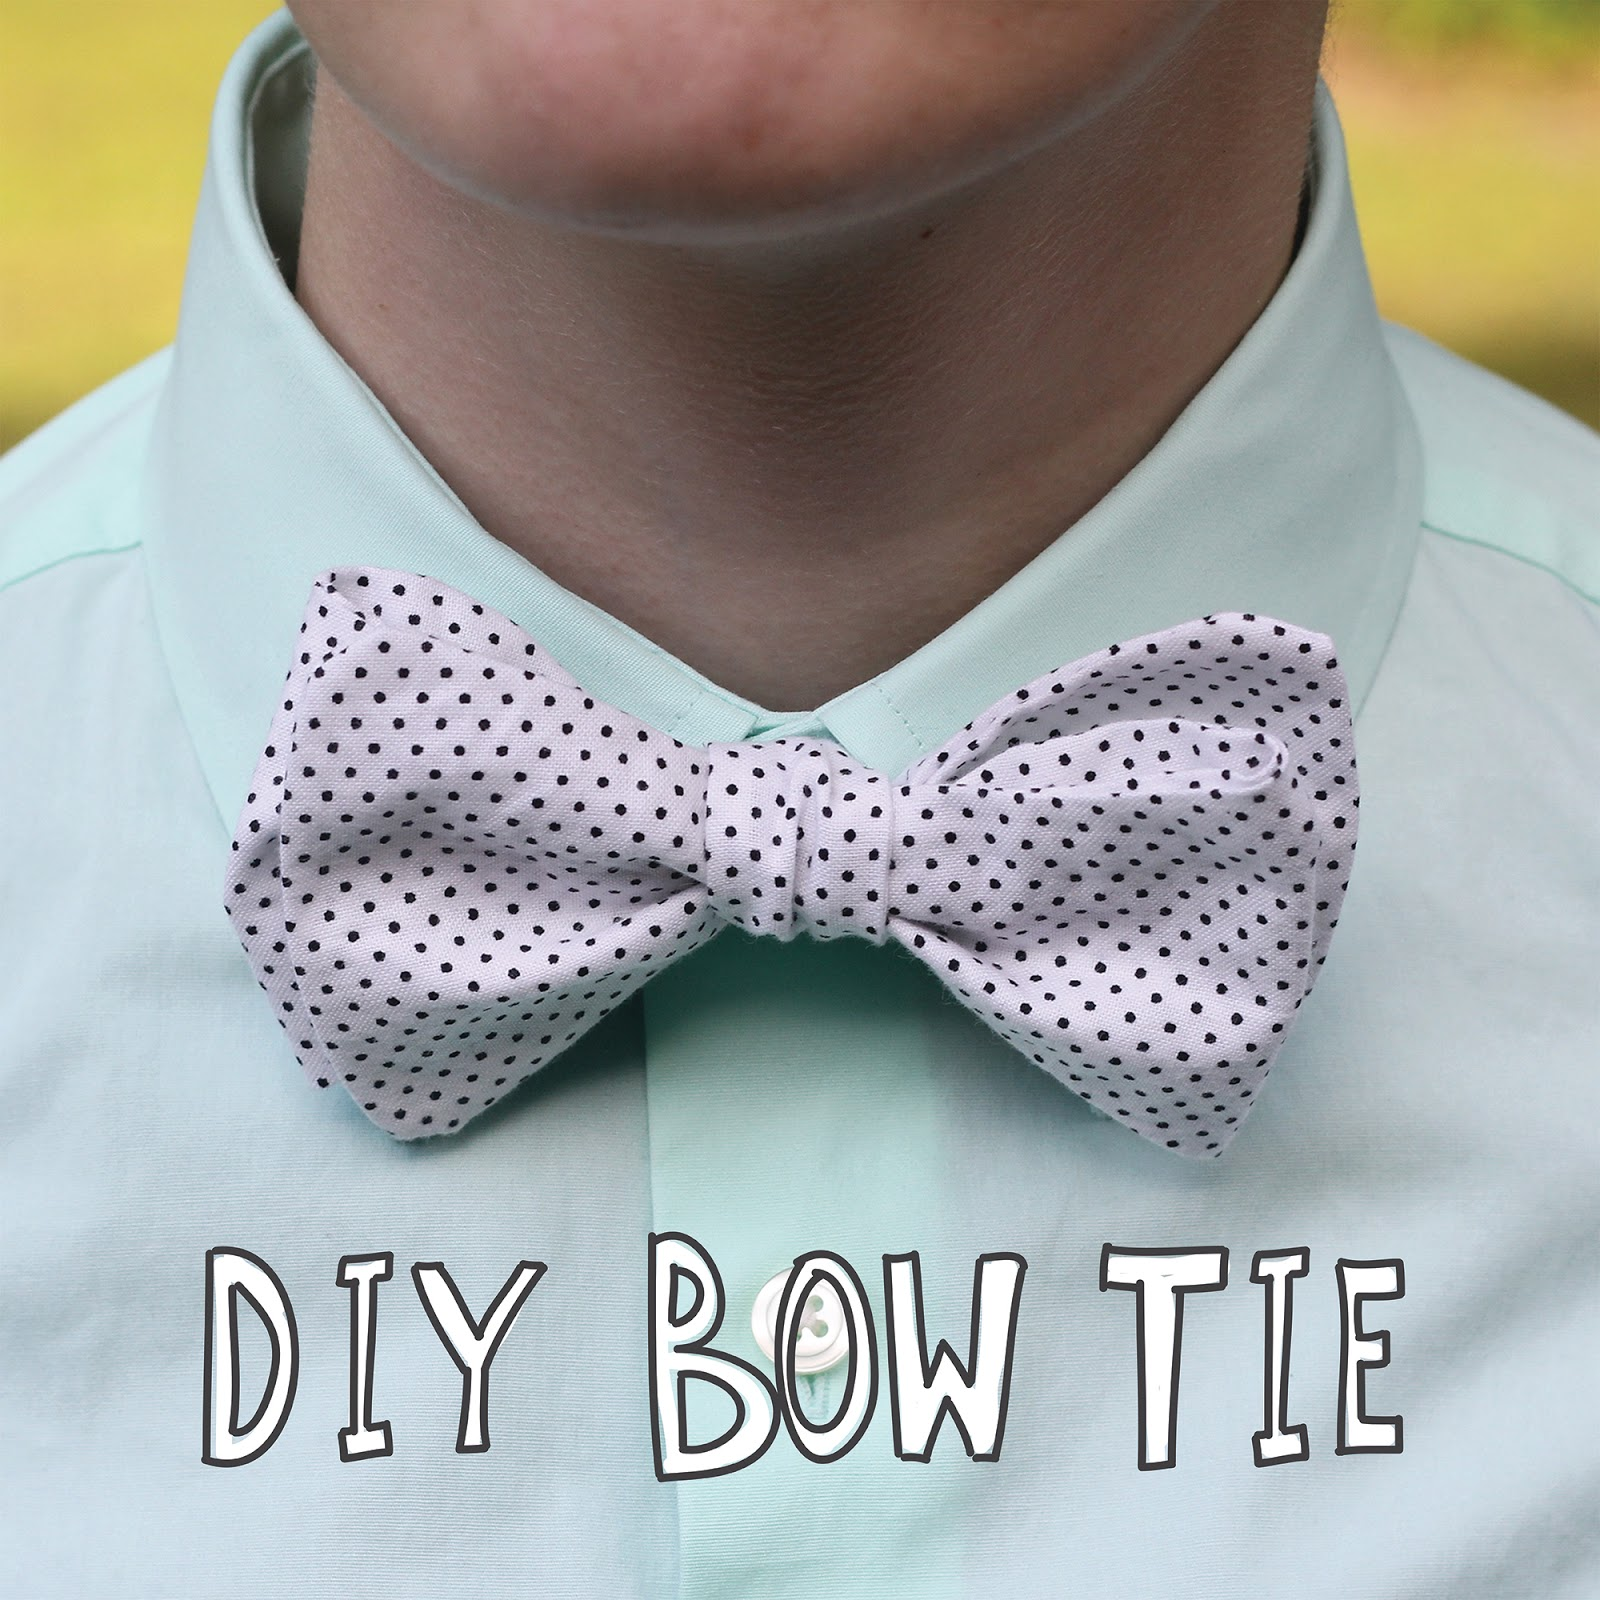 We Can Make Anything: handmade bow tie (+ free pattern!)